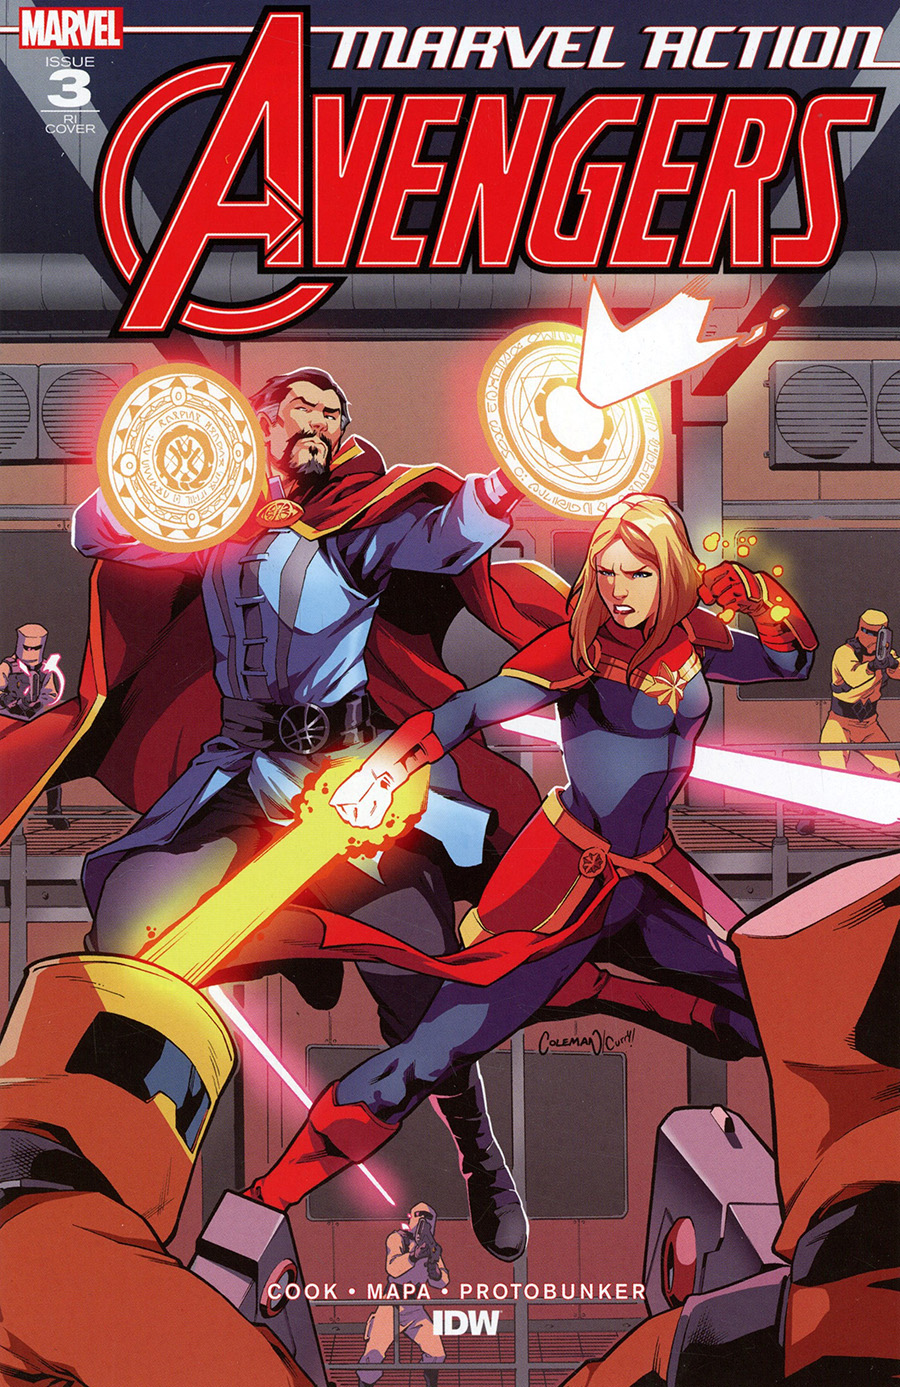 Marvel Action Avengers Vol 2 #3 Cover B Incentive Ruairi Coleman & Bracadri Curry Variant Cover